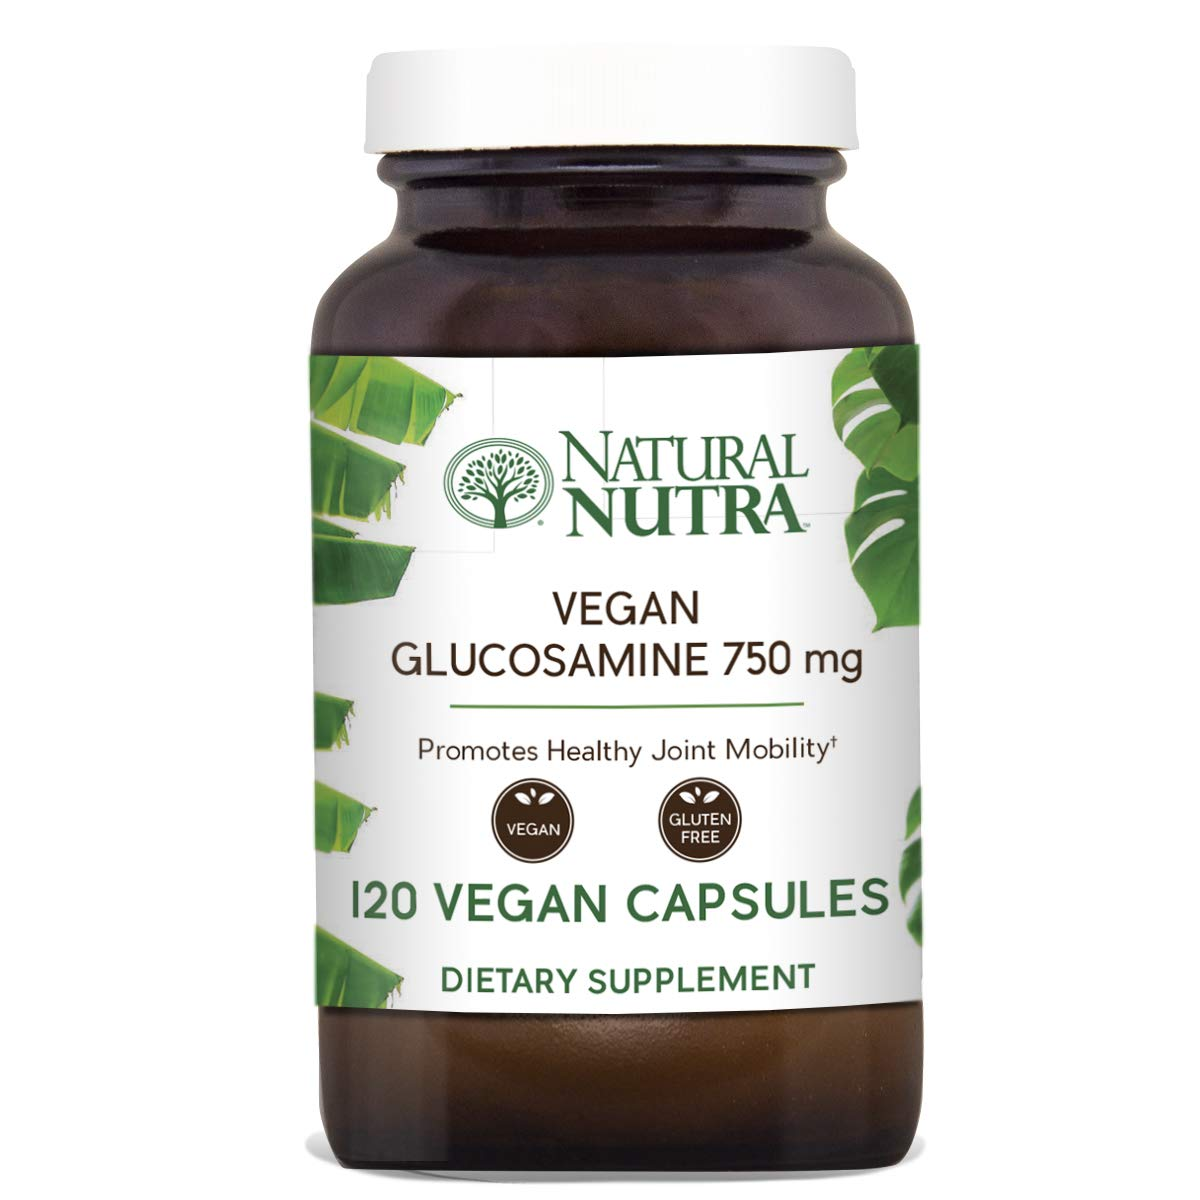 Natural Nutra Vegan and Vegetarian Glucosamine Hydrochloride, Kosher, Shellfish Free, Plant Based, Collagen, Joint and Cartilage Support Supplement, 750mg, 120 Capsules by Natural Nutra